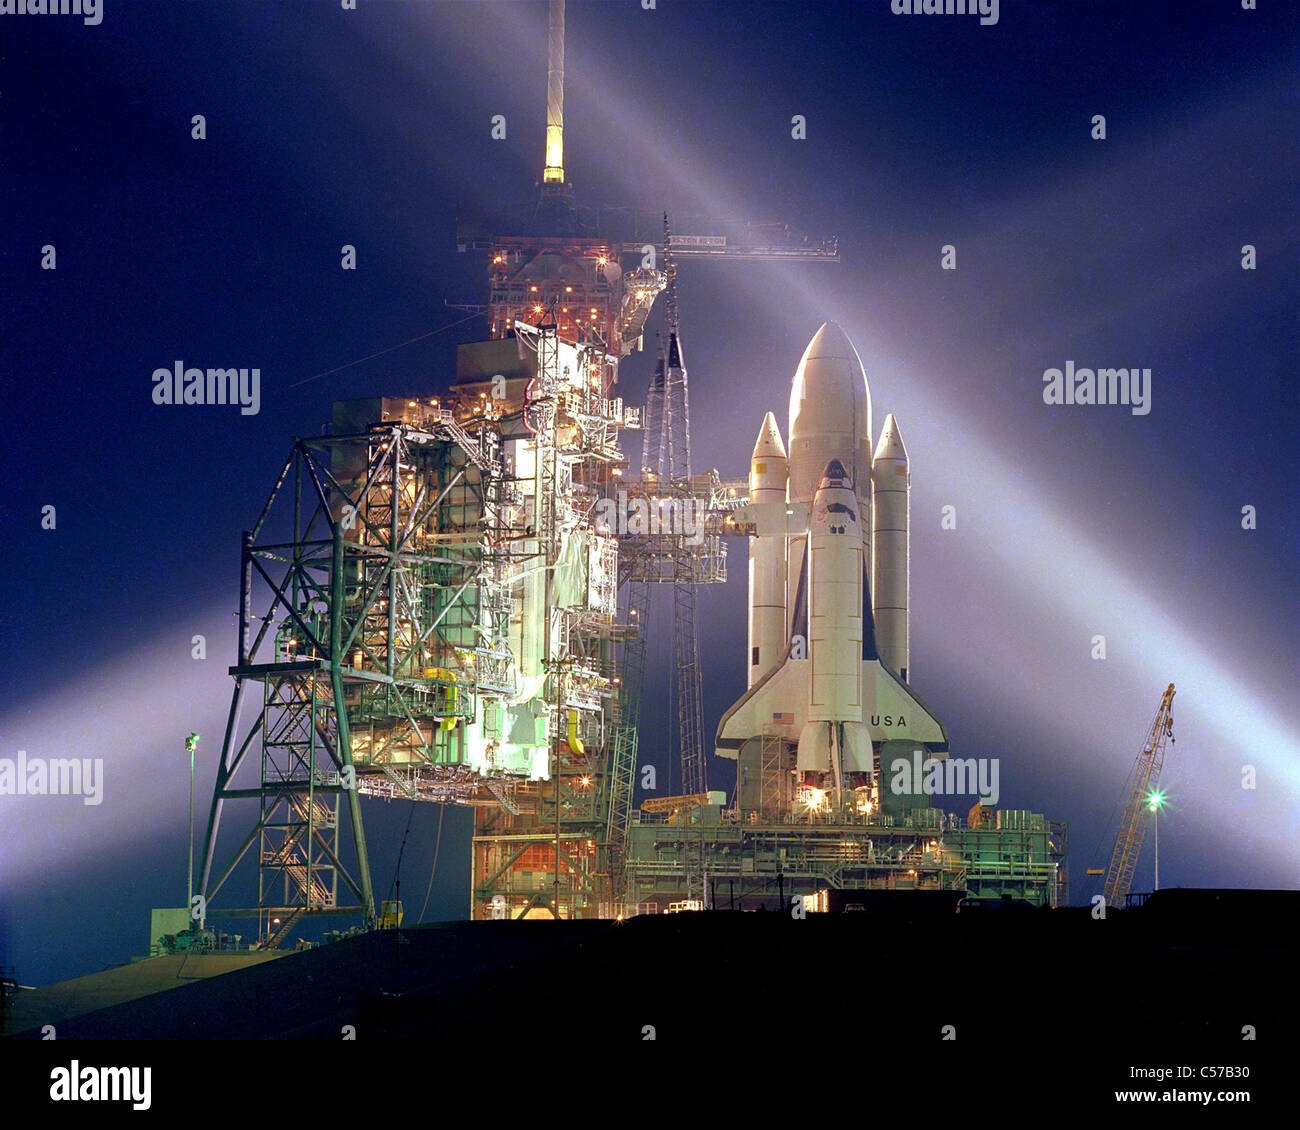 Space Shuttle Columbia on Launch Pad 39A before its maiden flight, STS-1. - Stock Image